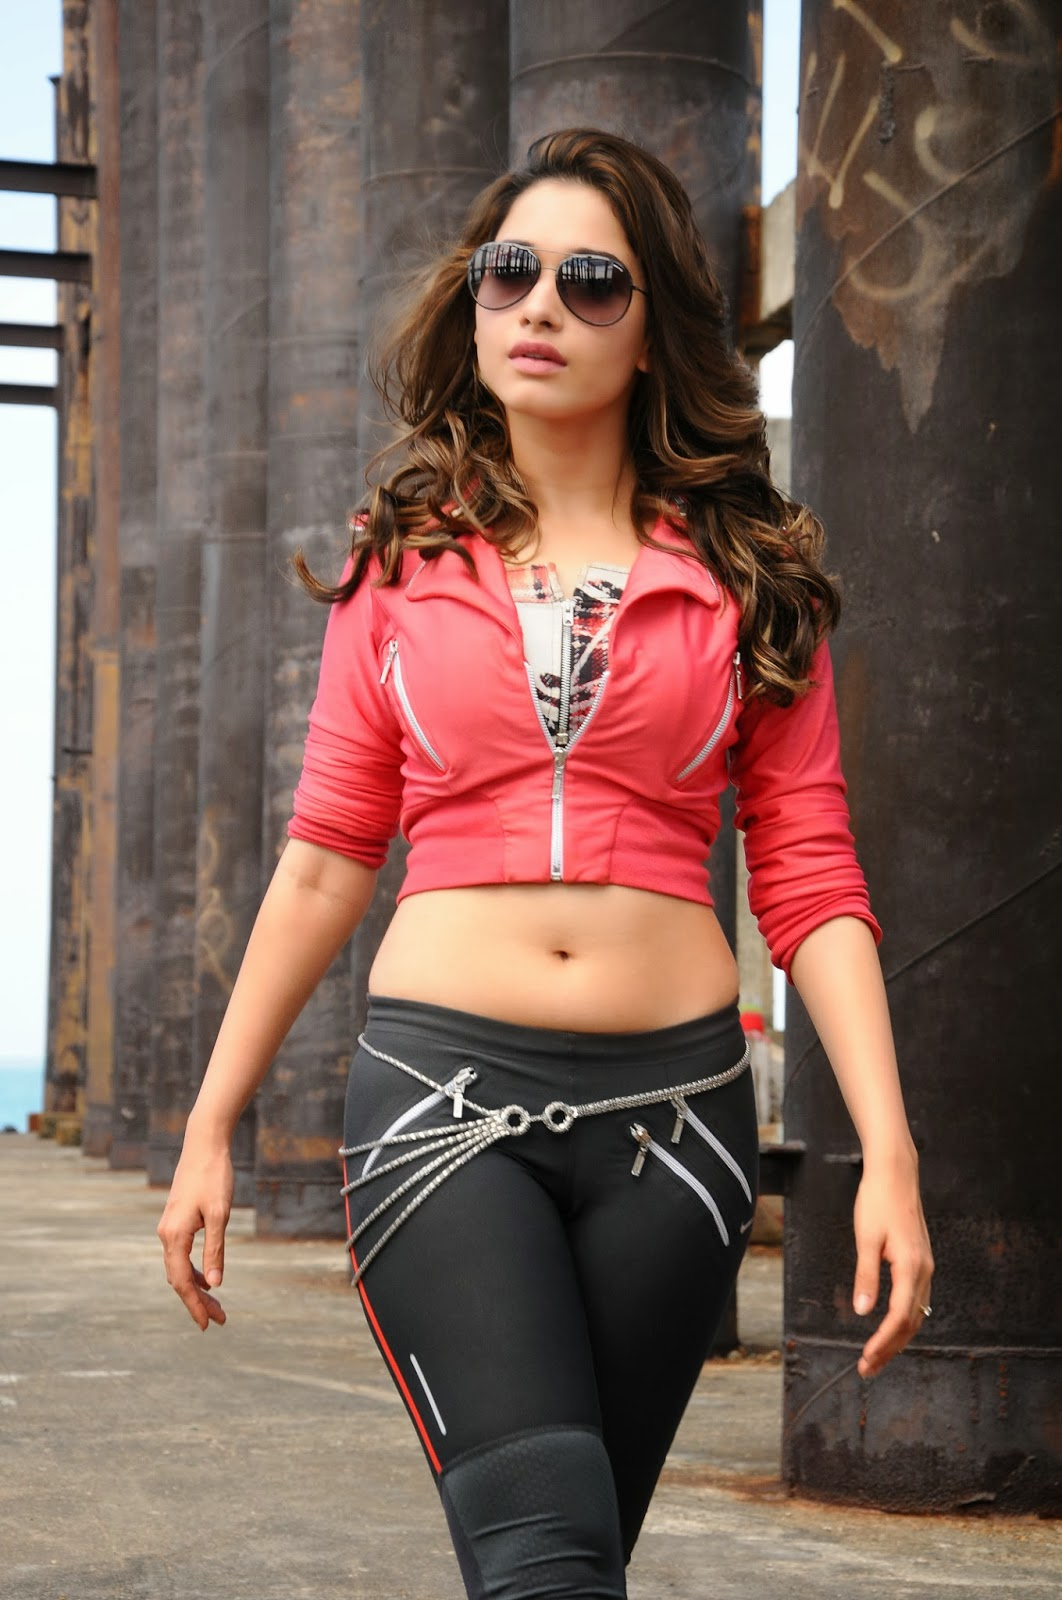 bollywood&tollywood bikini girls ss@: tamanna latest hot wallpapers